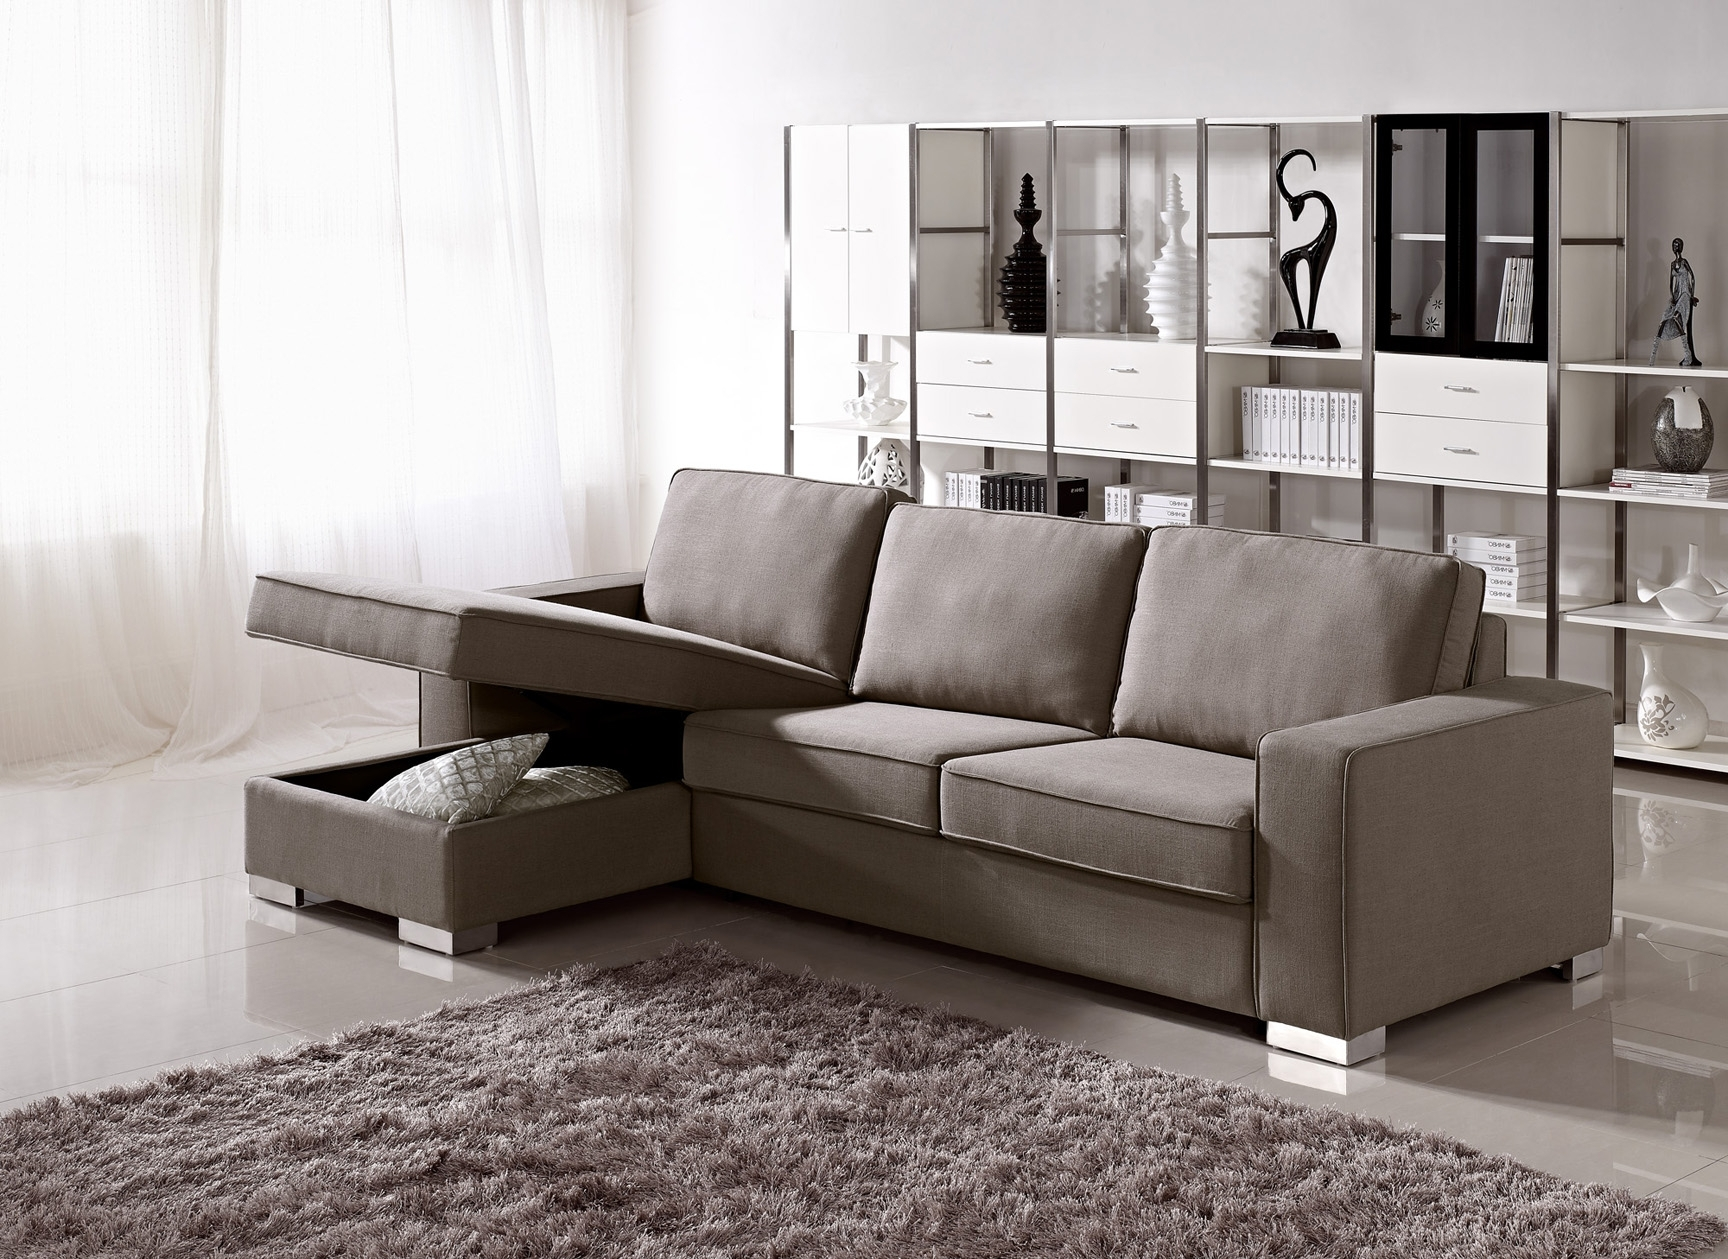 Nyc Sectional Sofas Within Recent Living Room Furniture Storage Modular Sofa With Thesofa Modern (View 3 of 15)